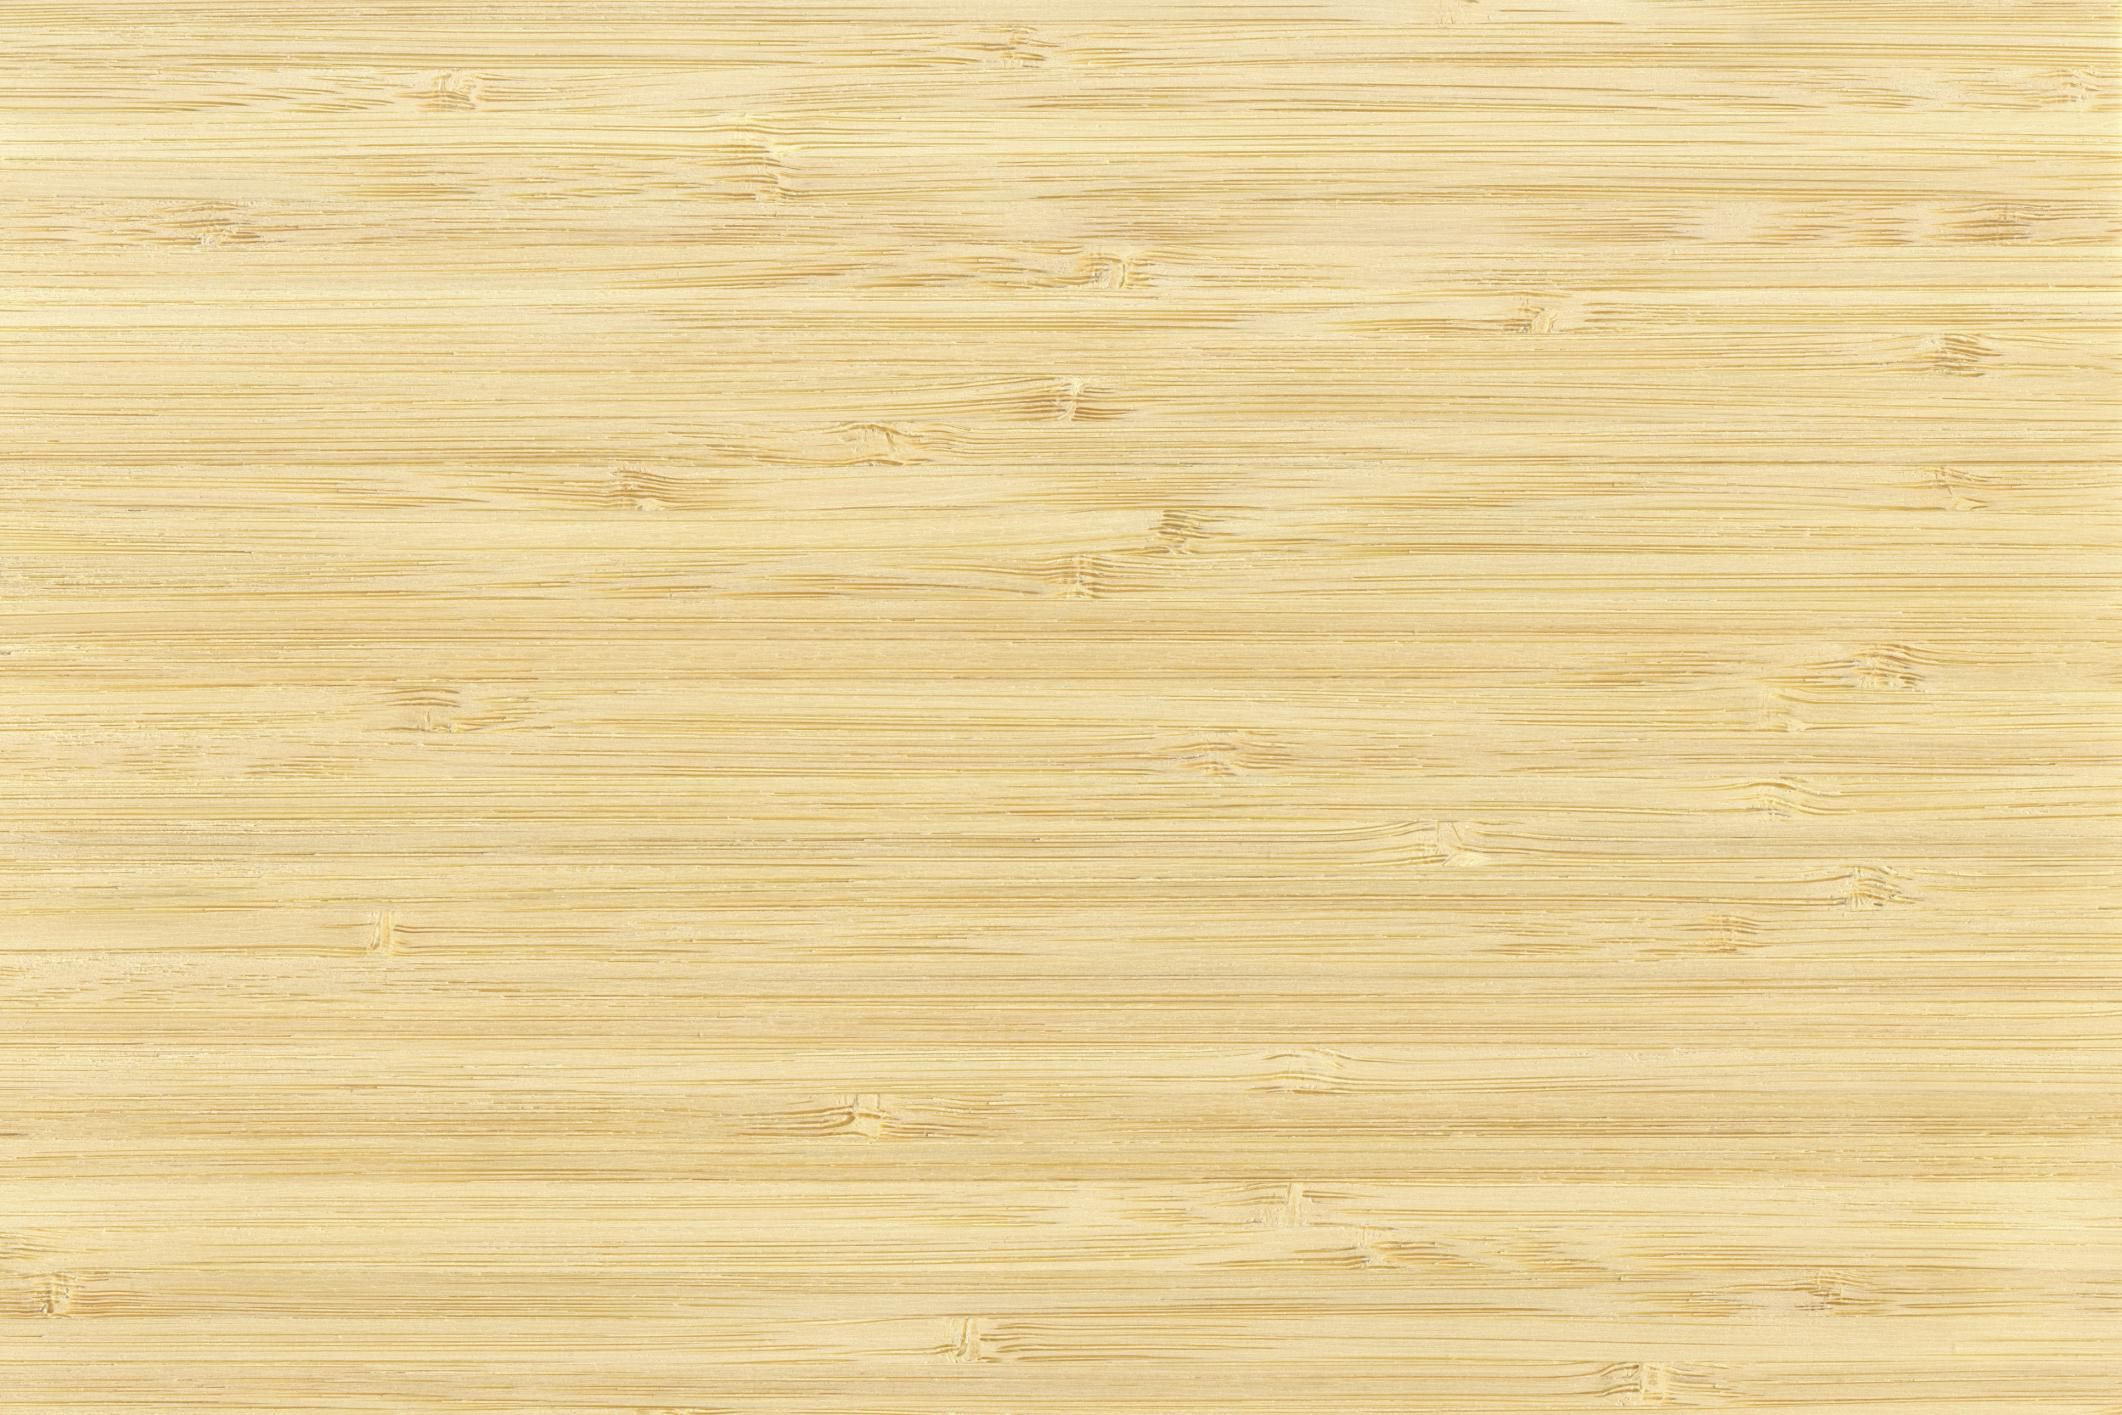 11 Stunning Hardwood Floor Installation Delaware 2021 free download hardwood floor installation delaware of bamboo flooring in a bathroom things to consider throughout 182740579 56a2fd883df78cf7727b6d14